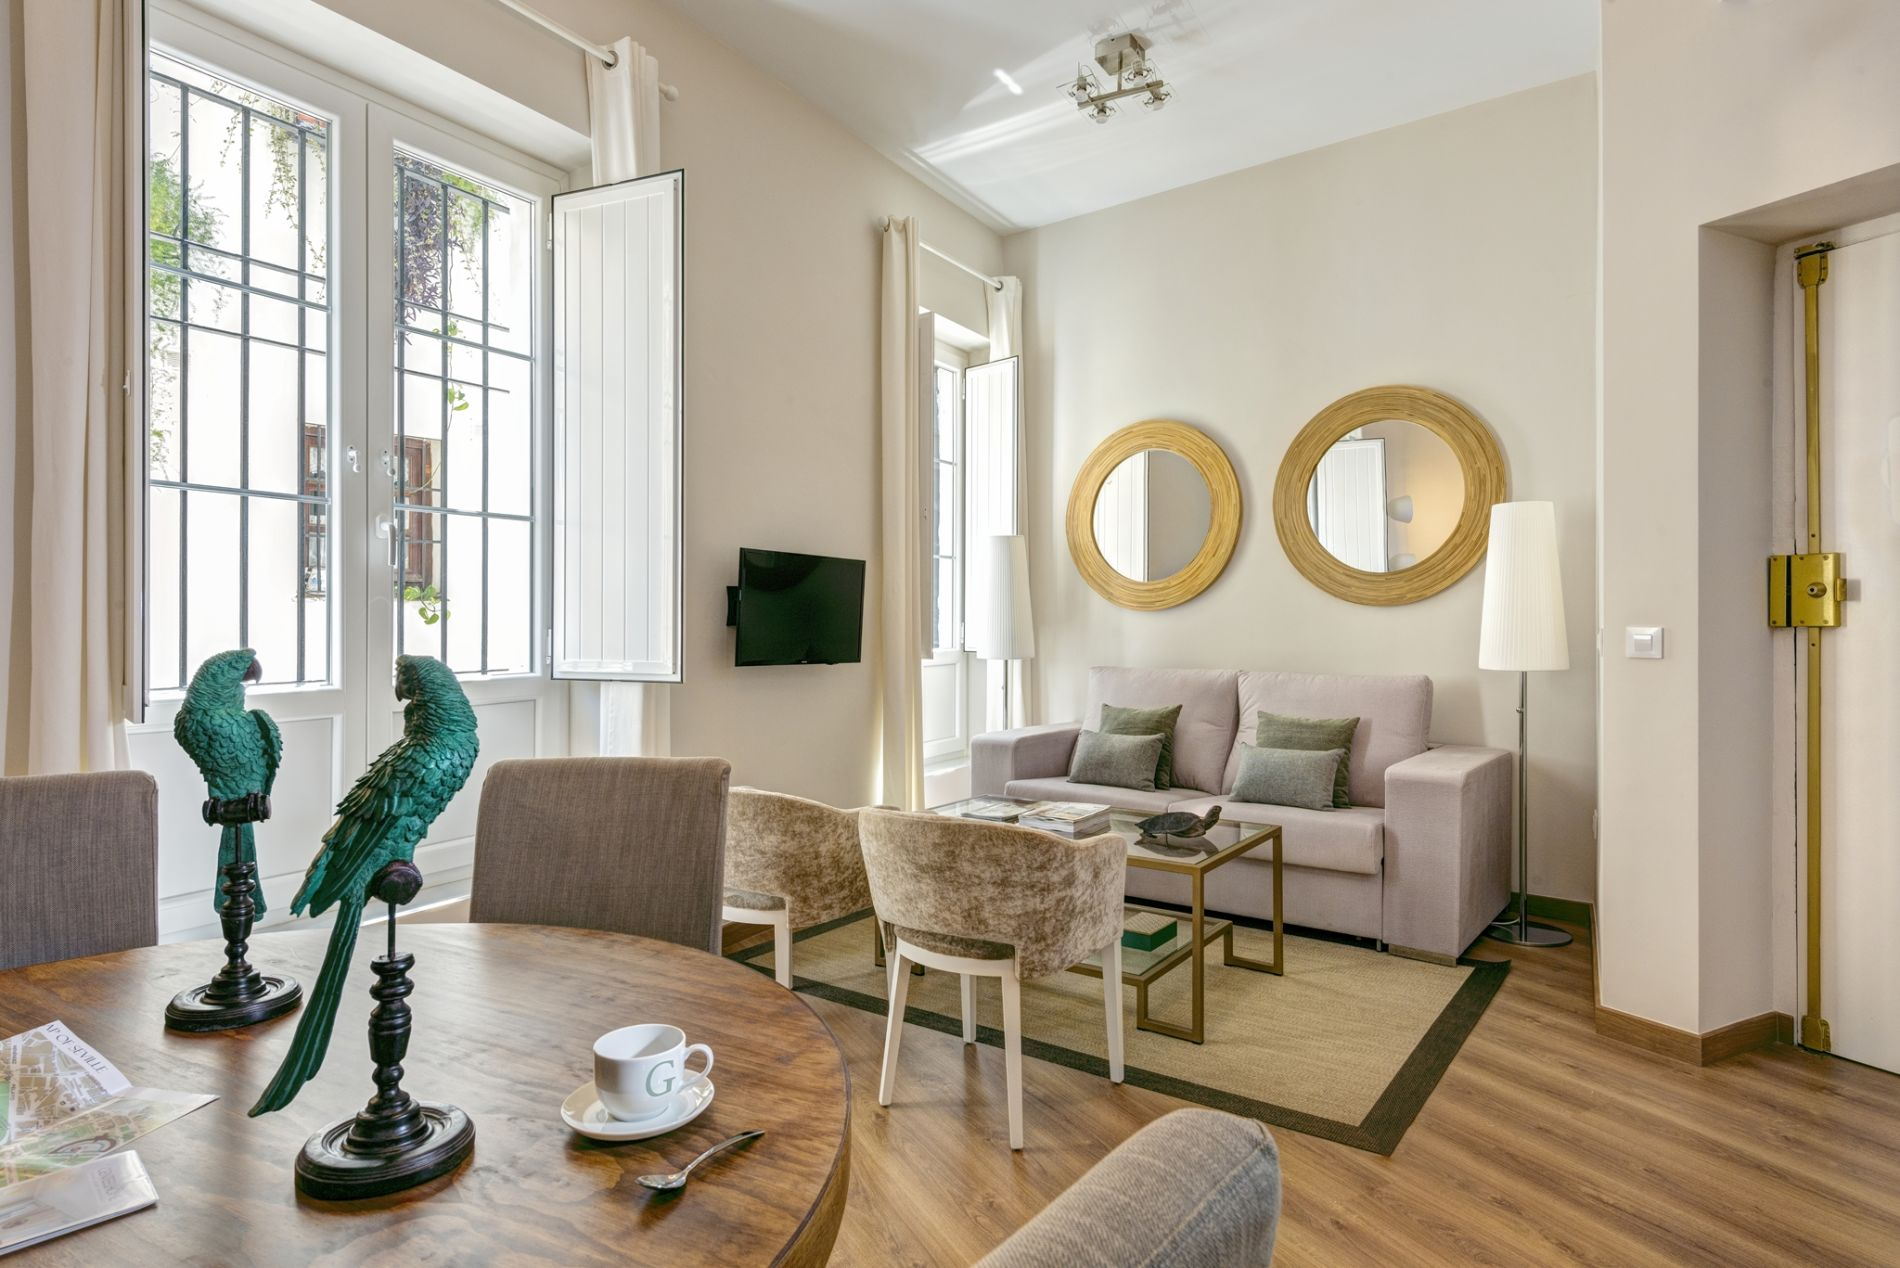 Apartment in Seville beautifully renovated and ideal for families with children